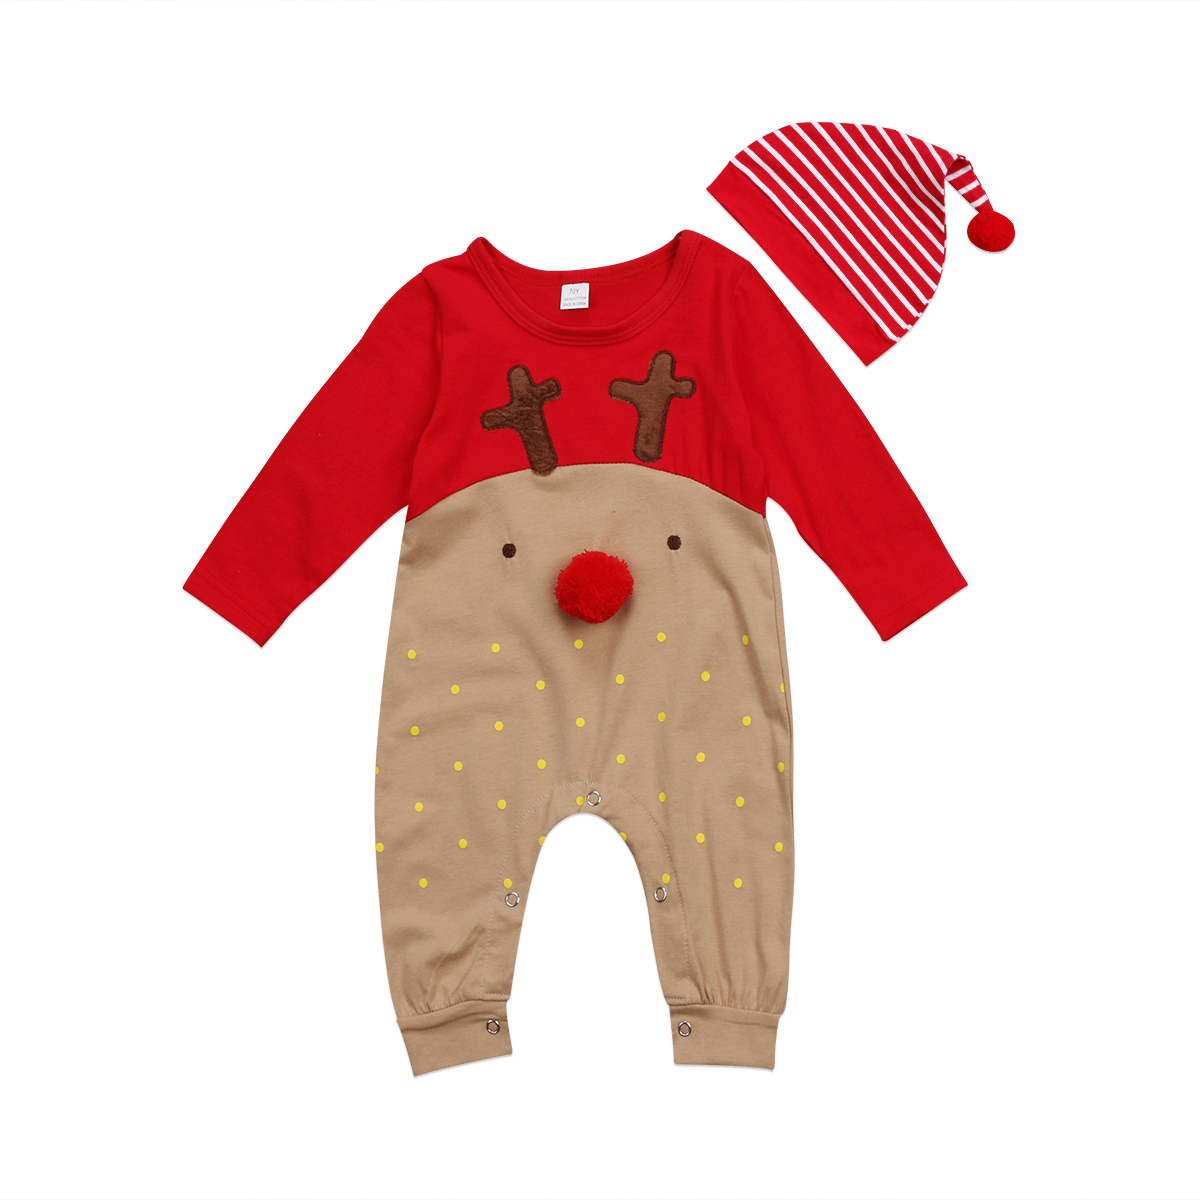 Super Cute Babies 2 PCS XMAS Romper Clothing Set Newborn Baby Boy Girl Christmas Rompers Striped Hats Jumpsuit Outfits Clothes 2018 summer brand romper baby girl clothes sleeveless baby girl clothing newborn rompers cute butterfly kids boy cute jumpsuit